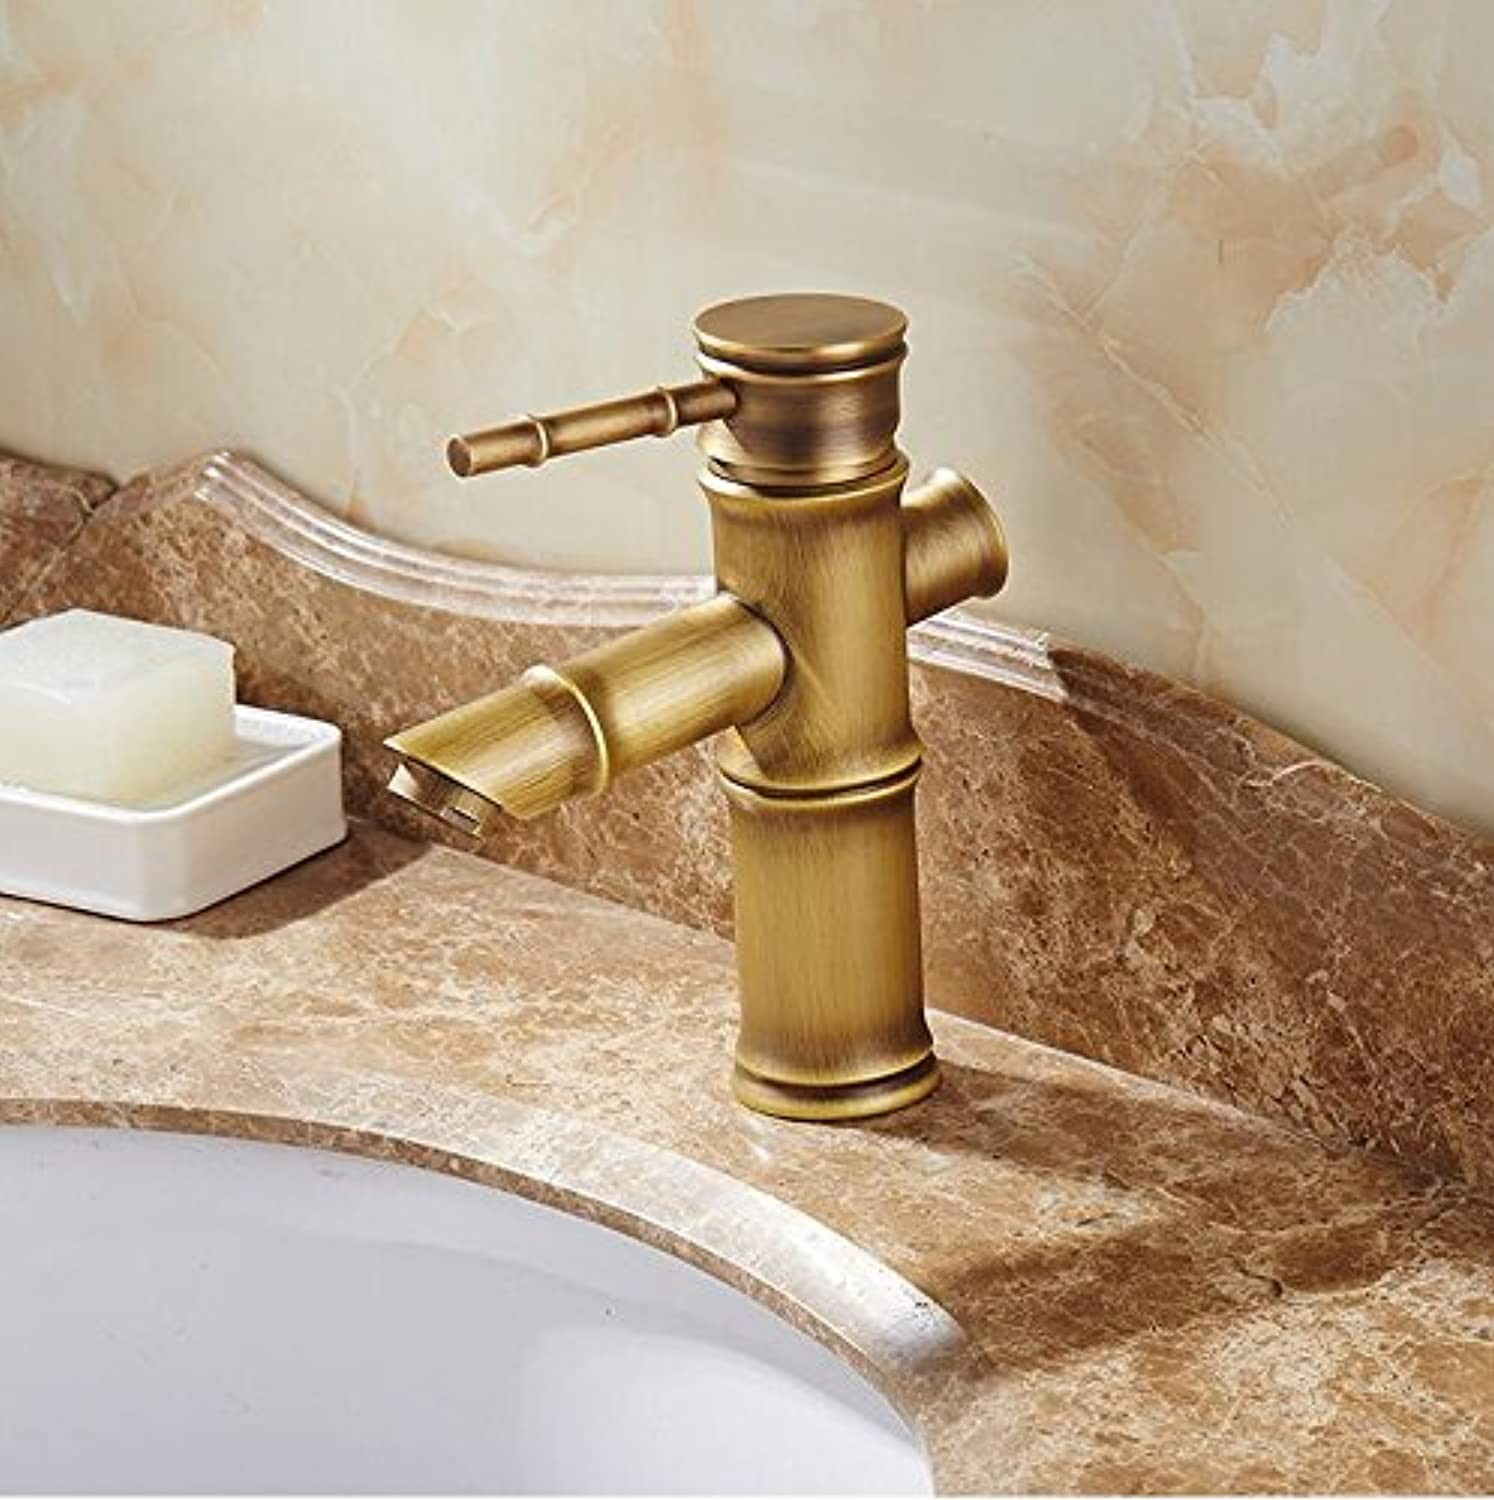 Mkkwp Antique Bamboo Bathroom Faucet Single Handle Bamboo Water Tap Antique Bronze Finish Brass Basin Sink Faucet Basin Faucet